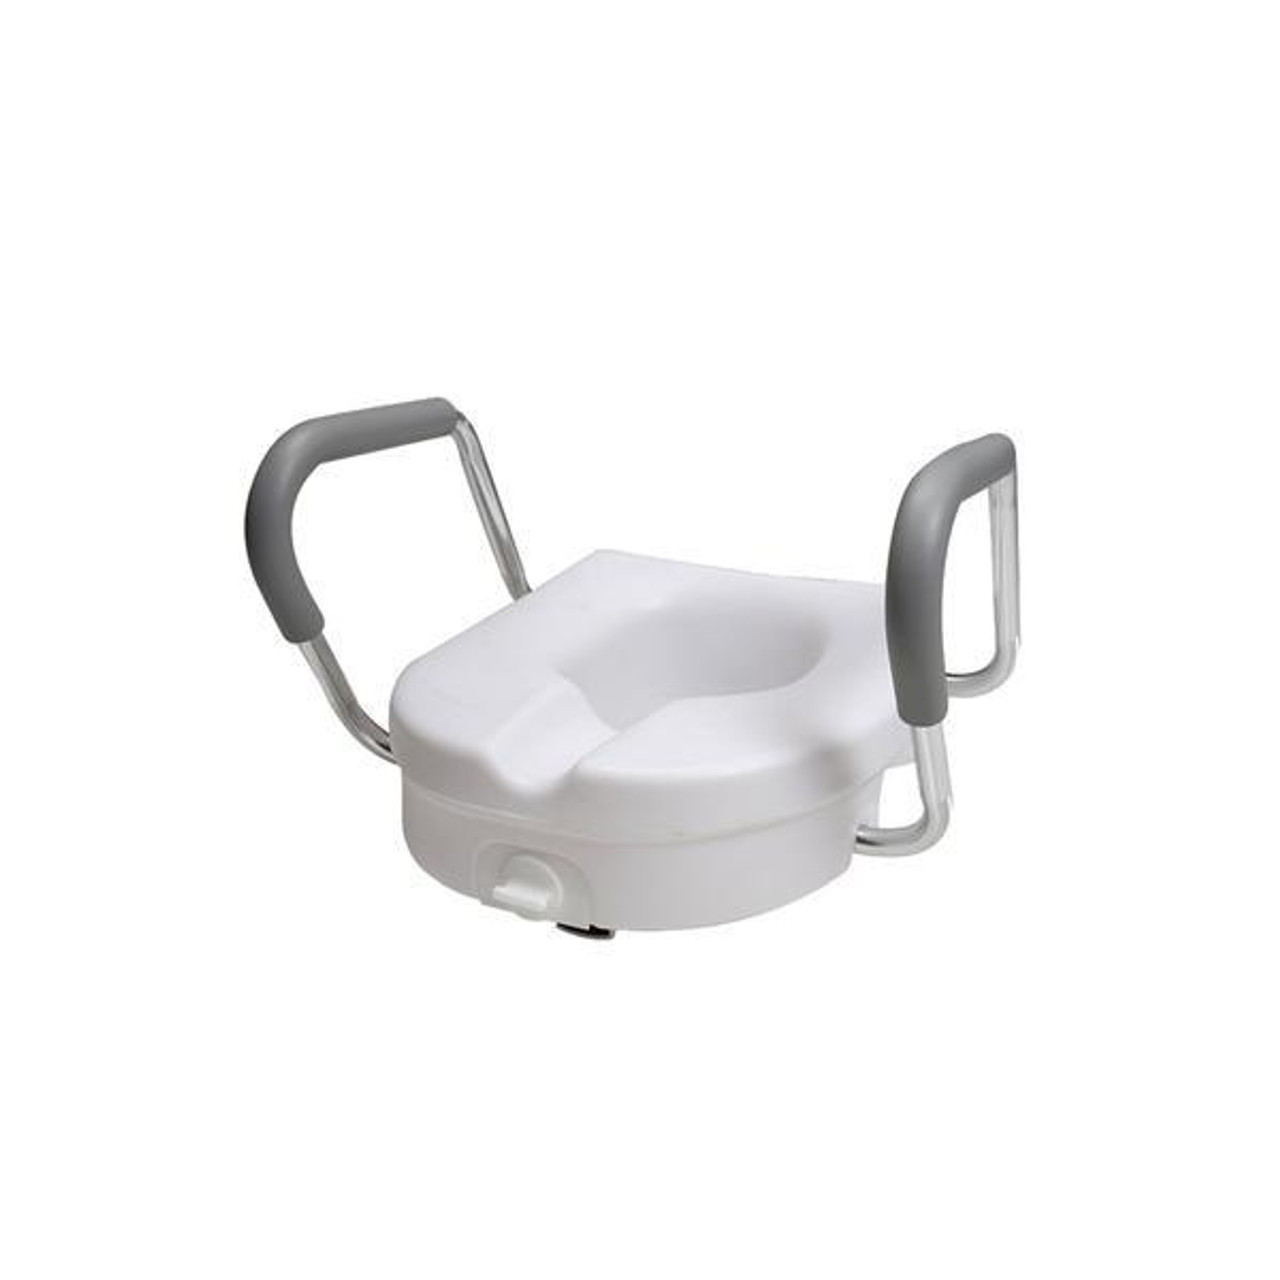 Groovy Pcp 7017 Raised Toilet Seat W Armrest Lock 7017 Pdpeps Interior Chair Design Pdpepsorg